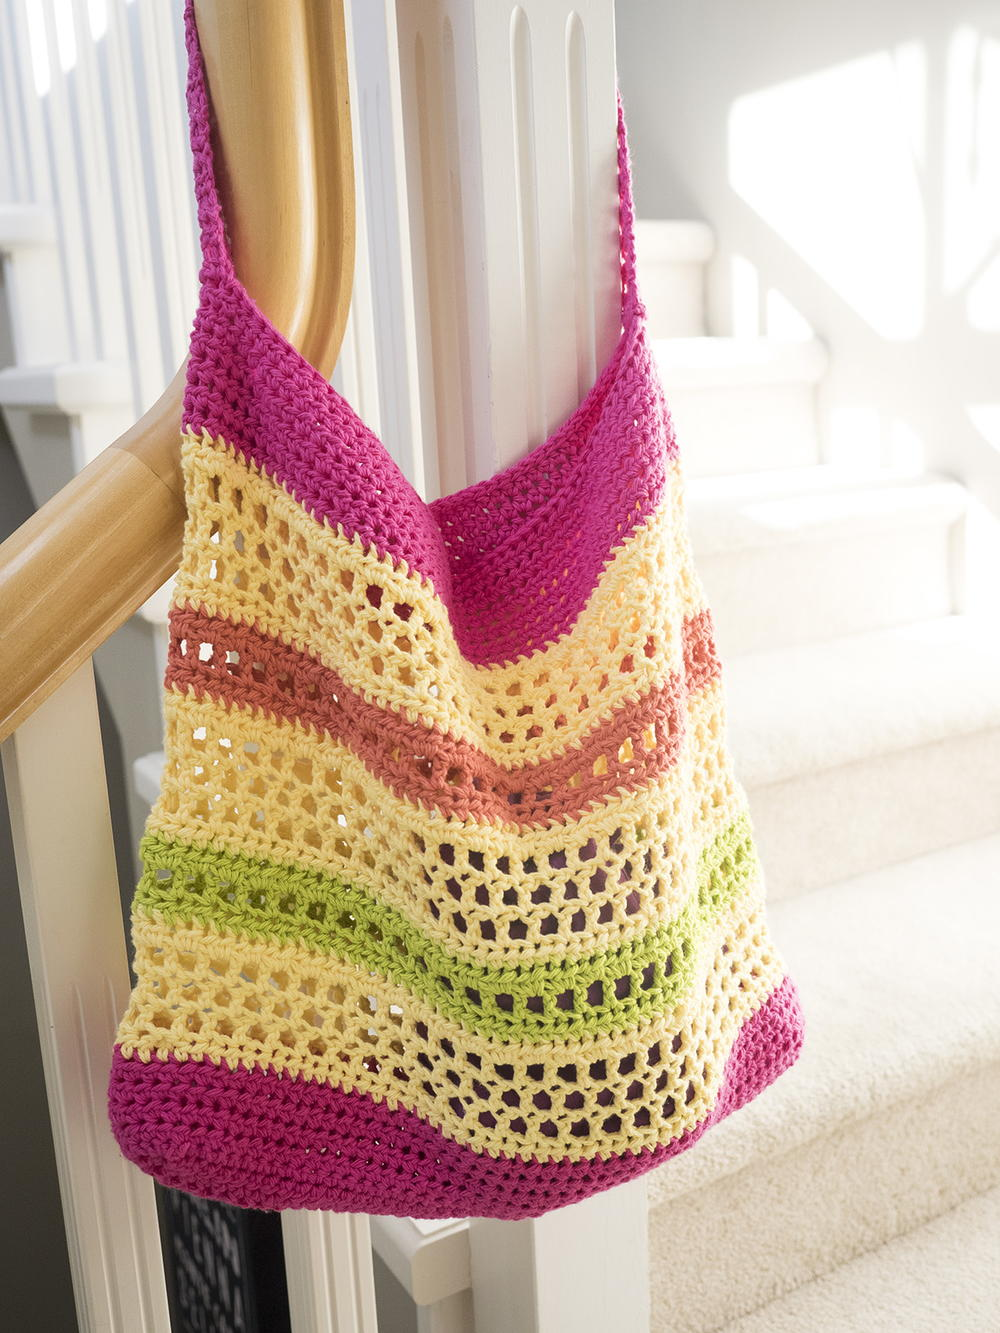 Beginner Crochet Tote Bag Pattern : Crochet Beach Tote Bag AllFreeCrochet.com